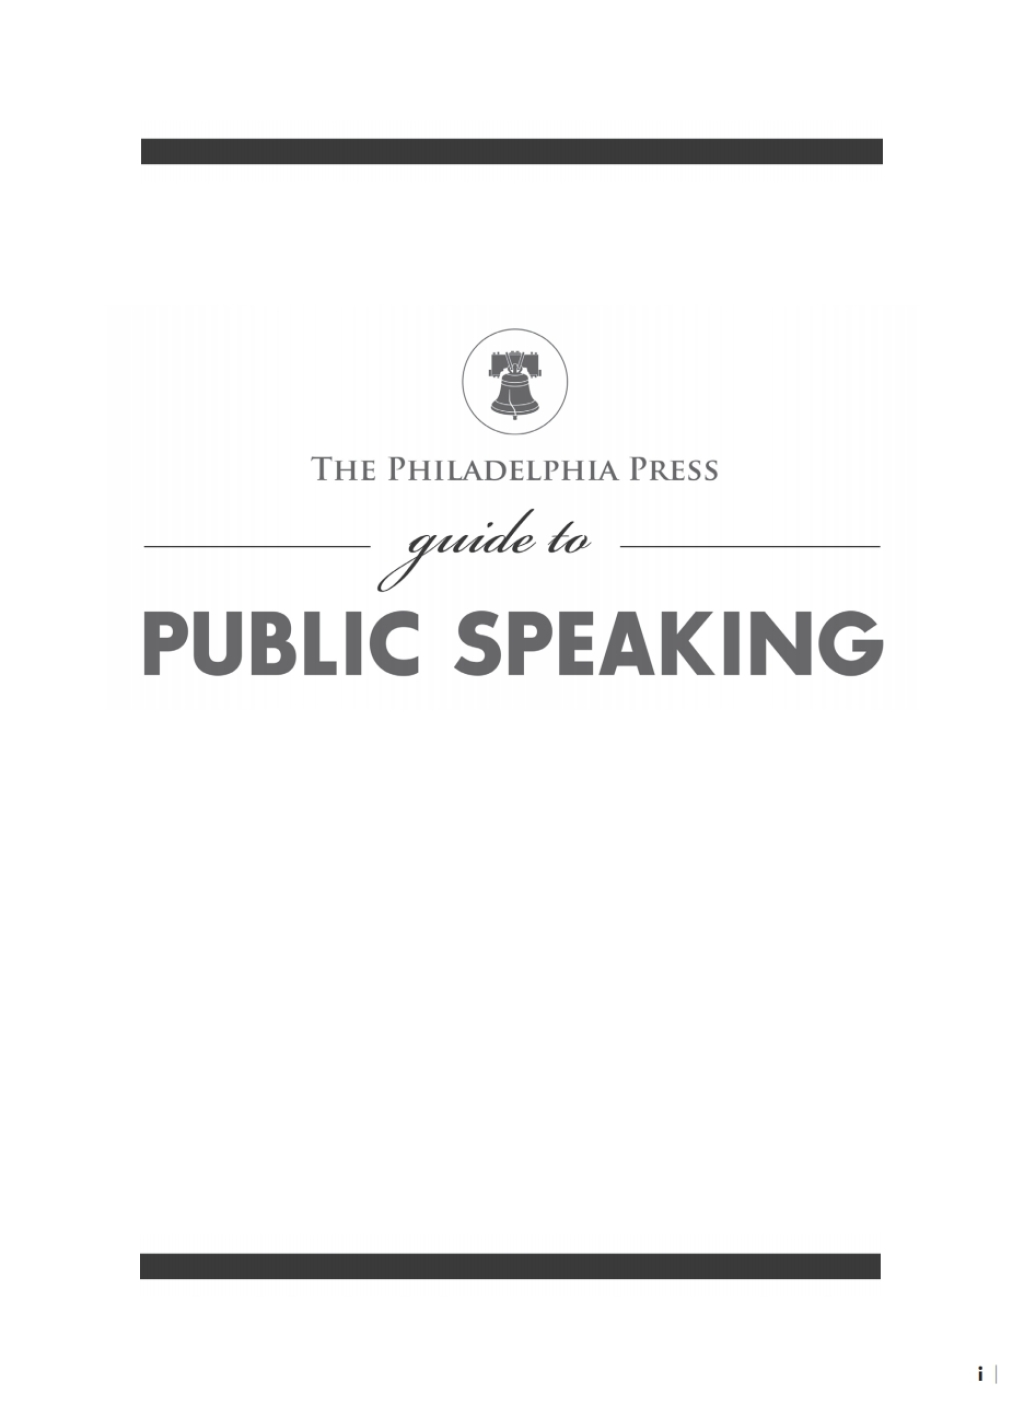 The Philadelphia Press Guide To Public Speaking (ebook)